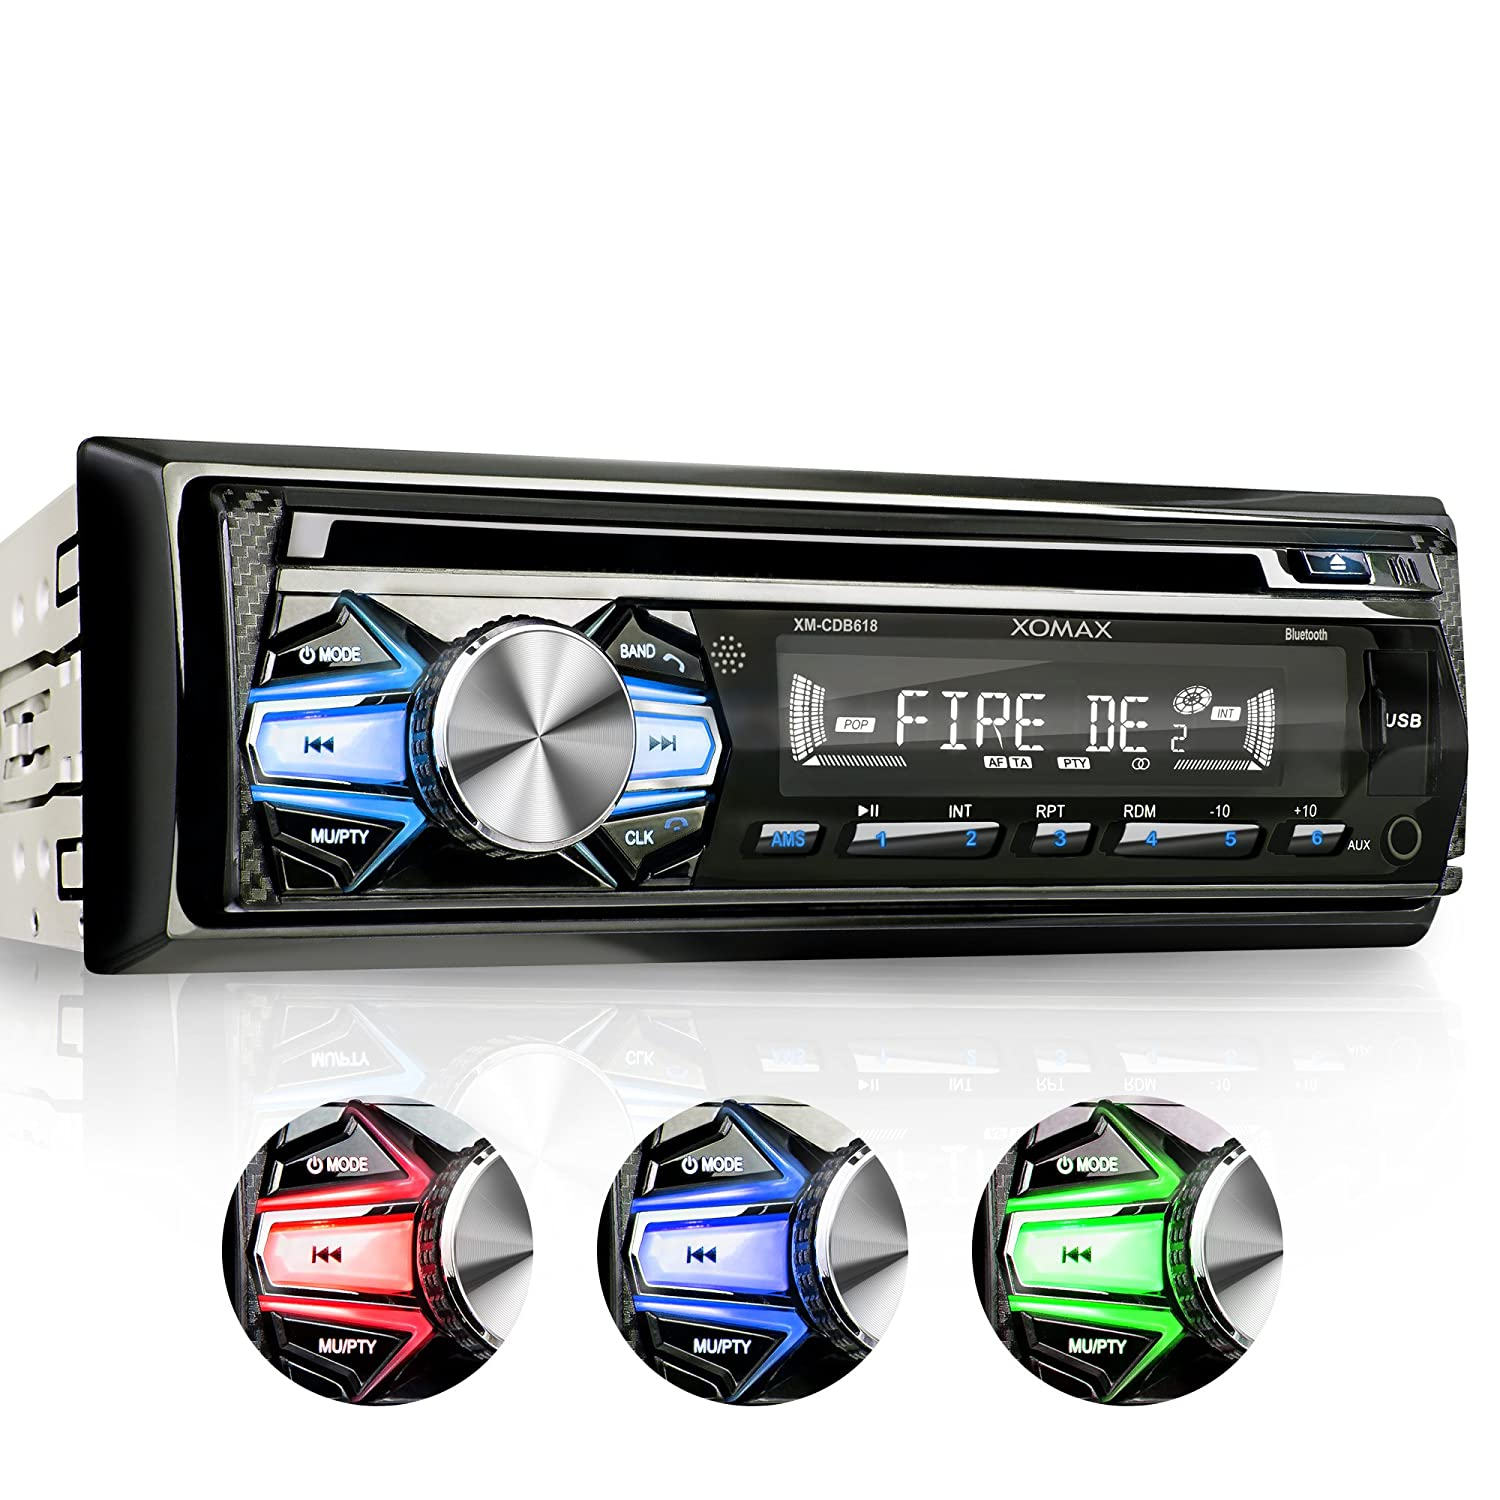 XOMAX XM-CDB618 Autoradio mit CD-Player + Bluetooth ...